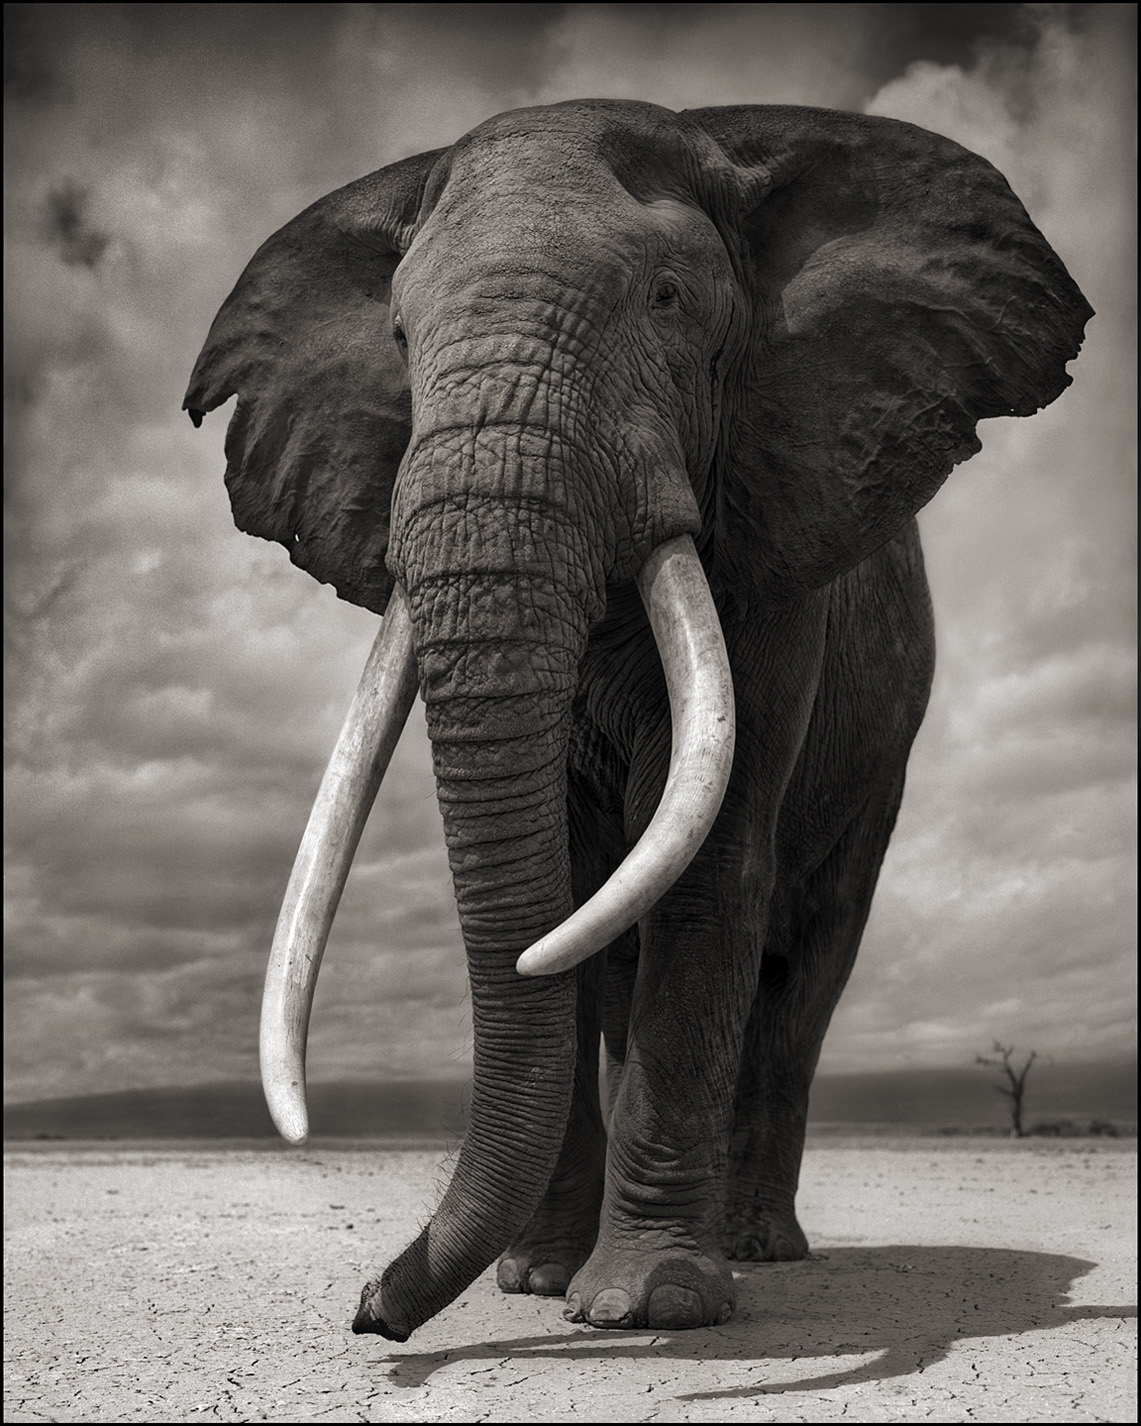 Elephant on Bare Earth